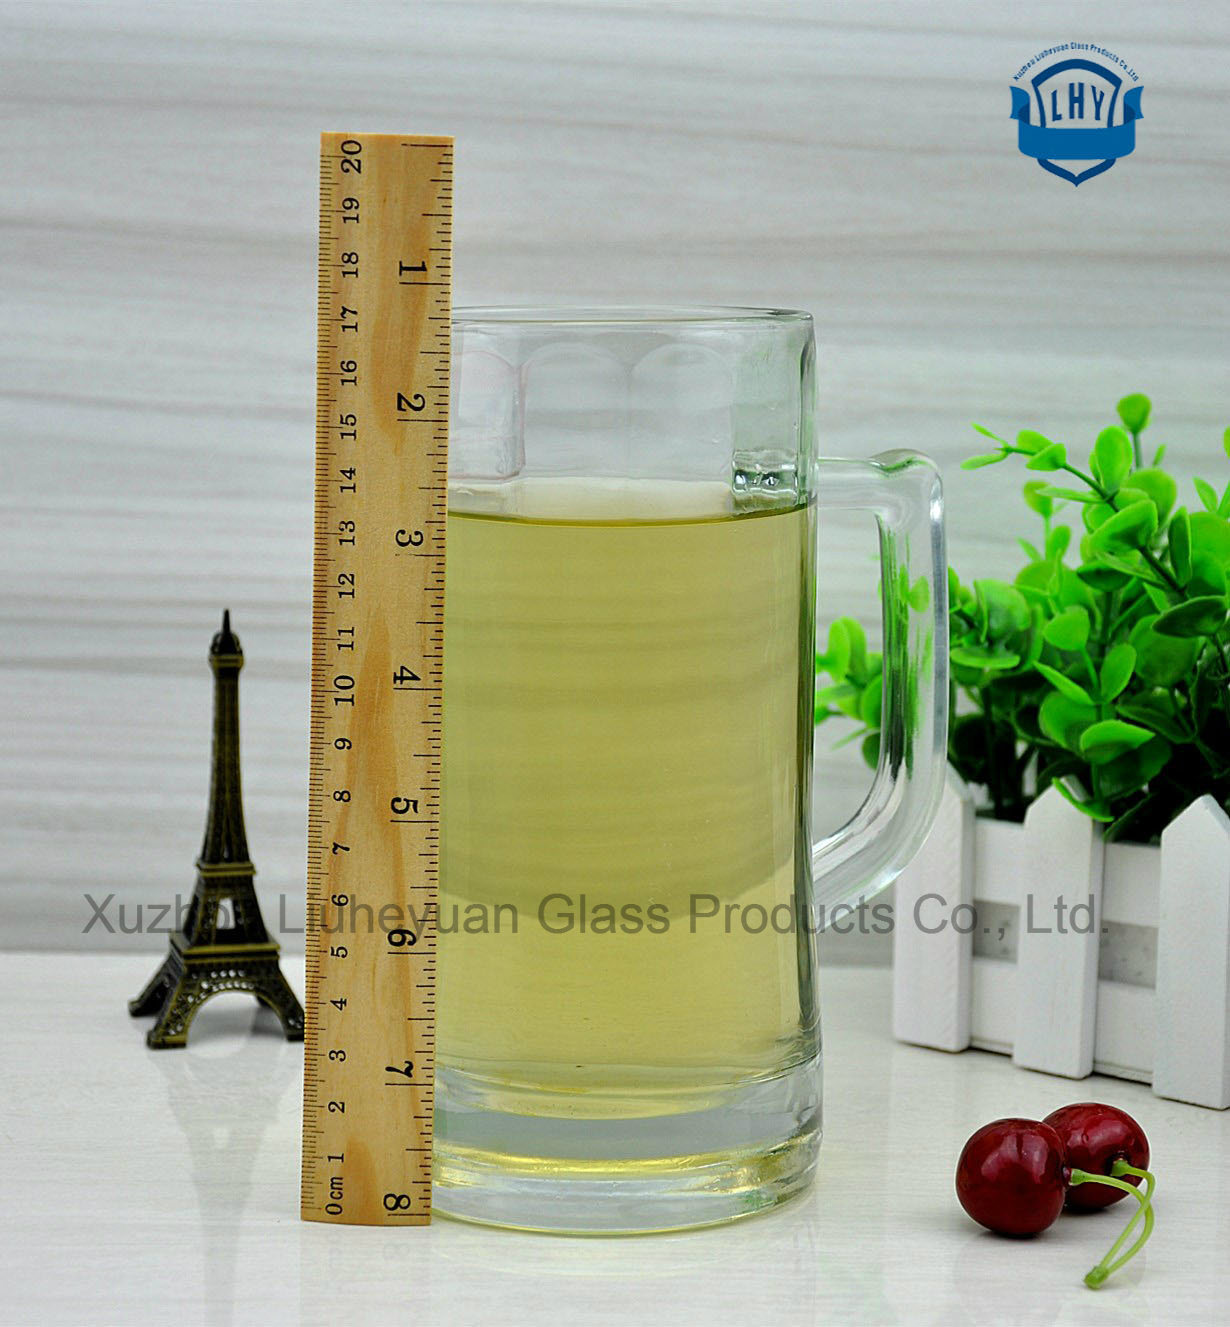 600ml High Grade Glass, Beer Glass Cup with Handle